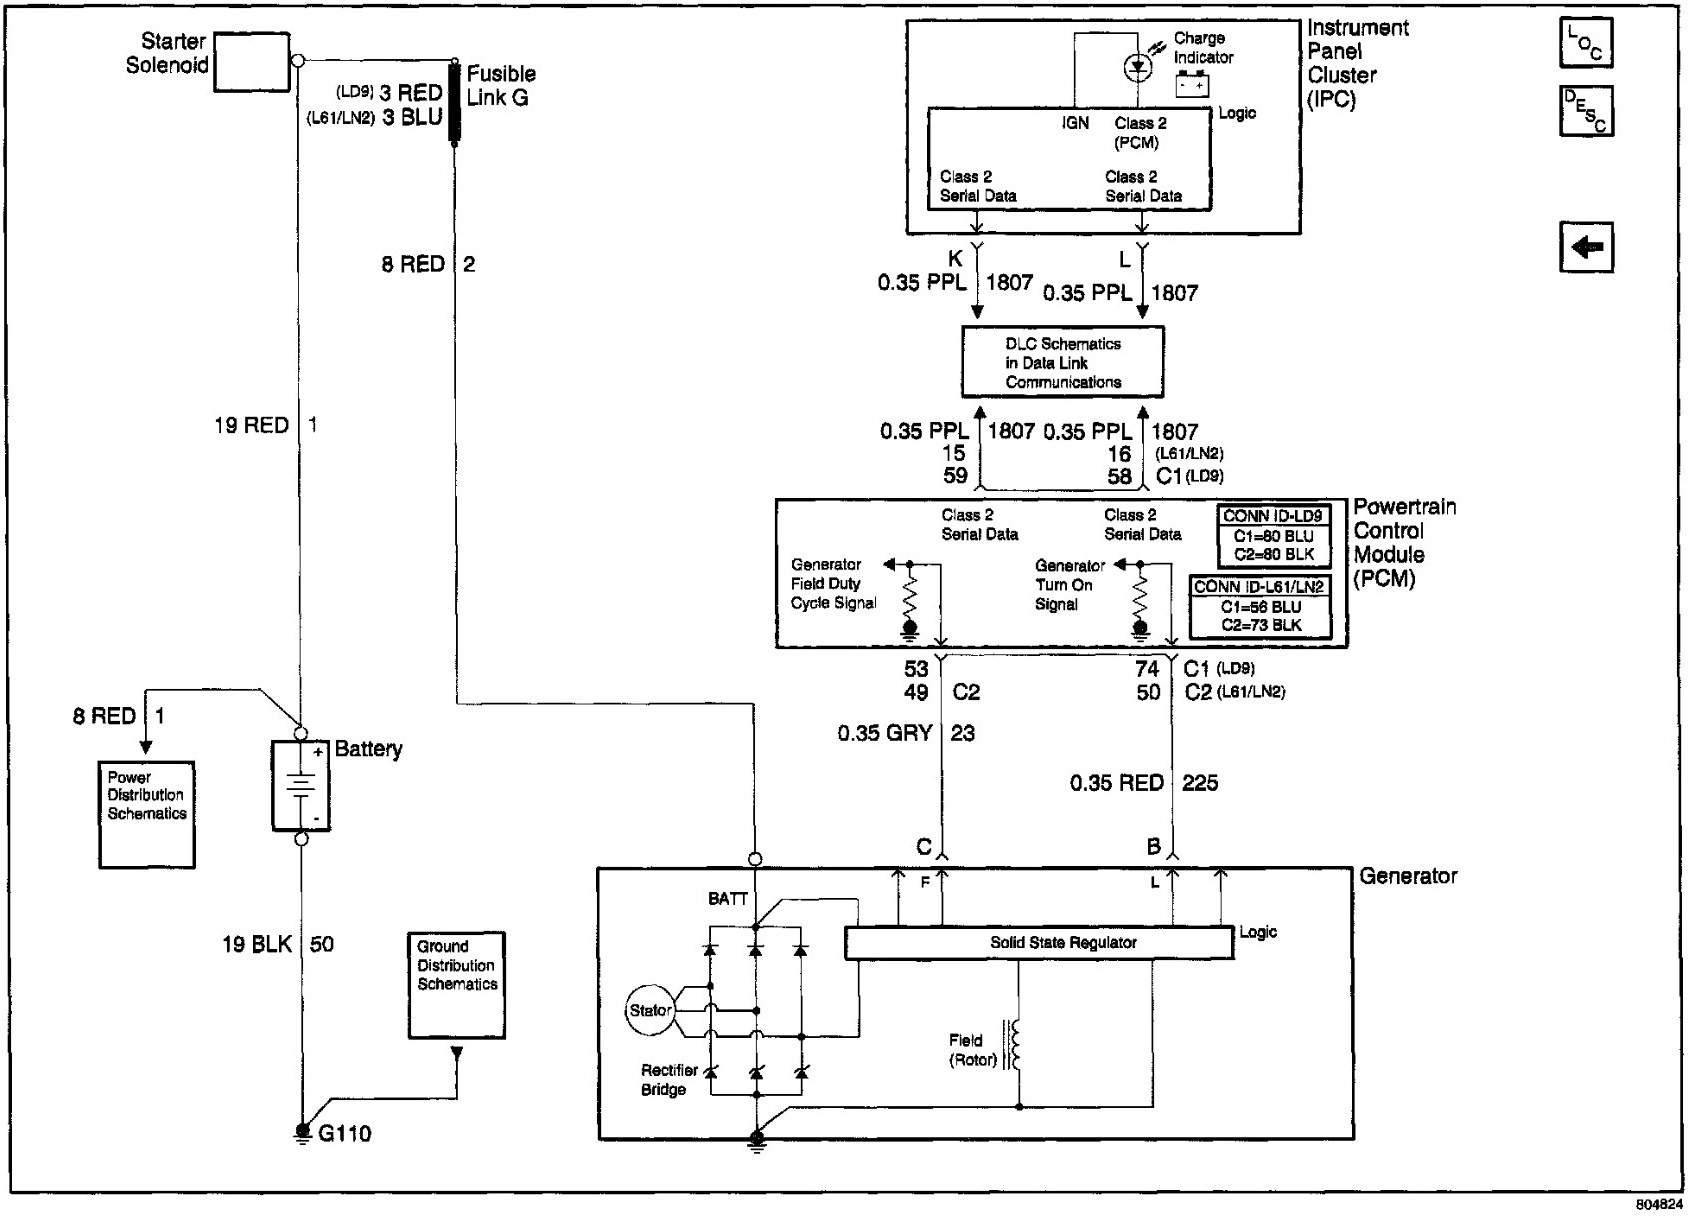 Chevy Alternator Wiring Diagram Best Chevy Alternator Wiring Diagram Ideas Everything You Need to Of Chevy Alternator Wiring Diagram